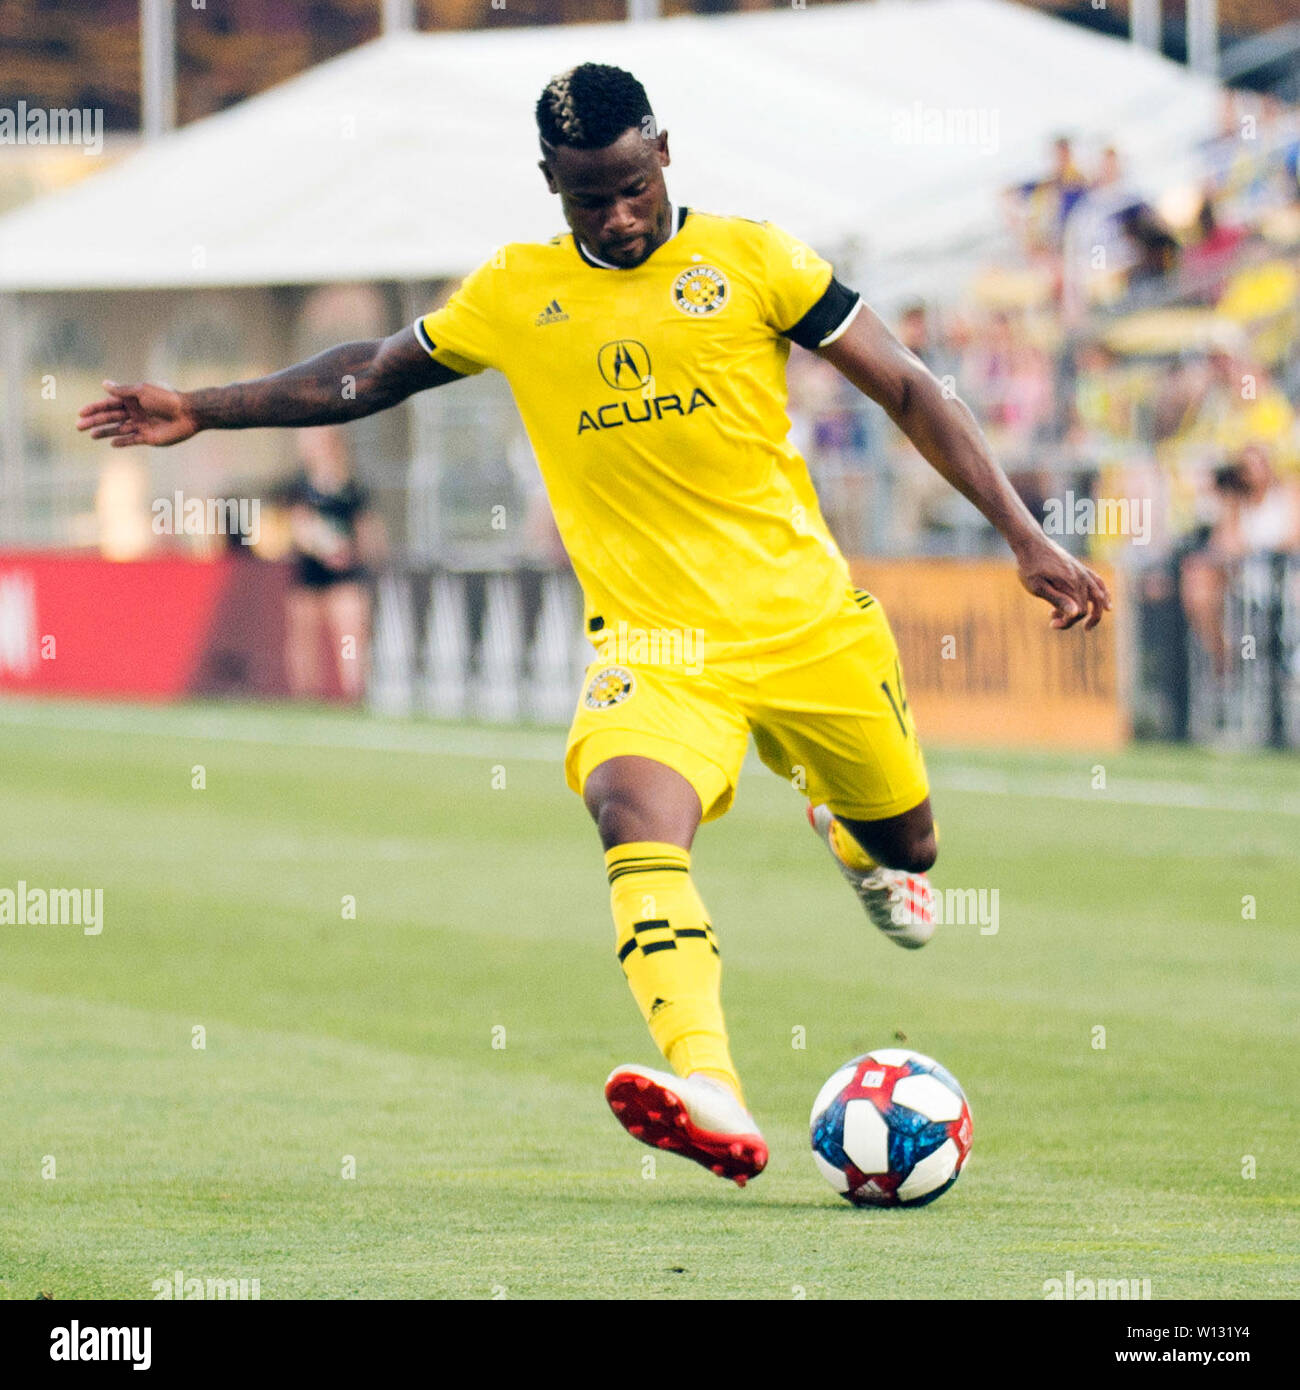 June 29, 2019: Columbus Crew SC defender Waylon Francis (14) sends the ball down the pitch against Orlando City in their game in Columbus, Ohio, USA. Brent Clark/Alamy Live News - Stock Image